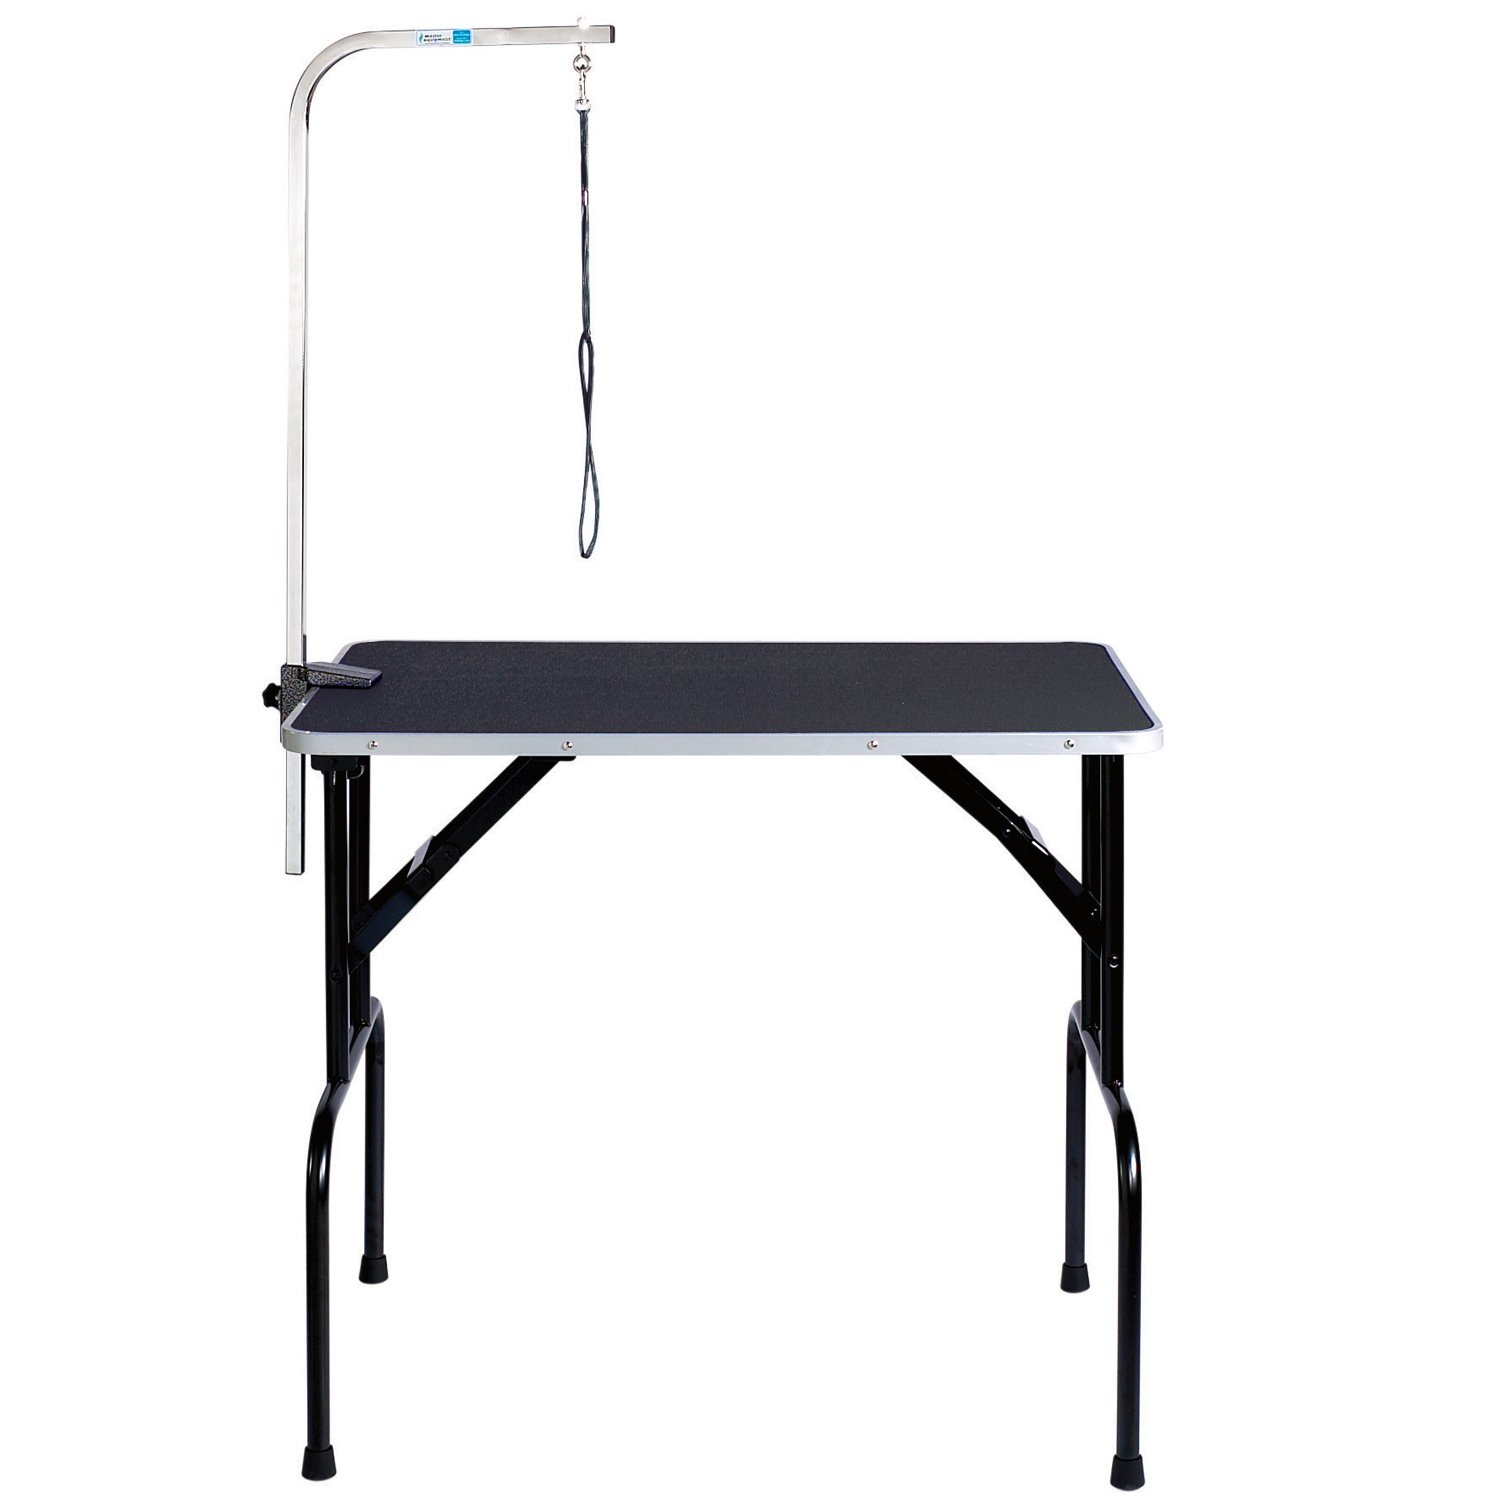 Affordable Dog Grooming Table Arm Amazon.com : Master Equipment Grooming Table with Arm, 36 by 24 by 32-Inch  : Pet Grooming Supplies : Pet Supplies